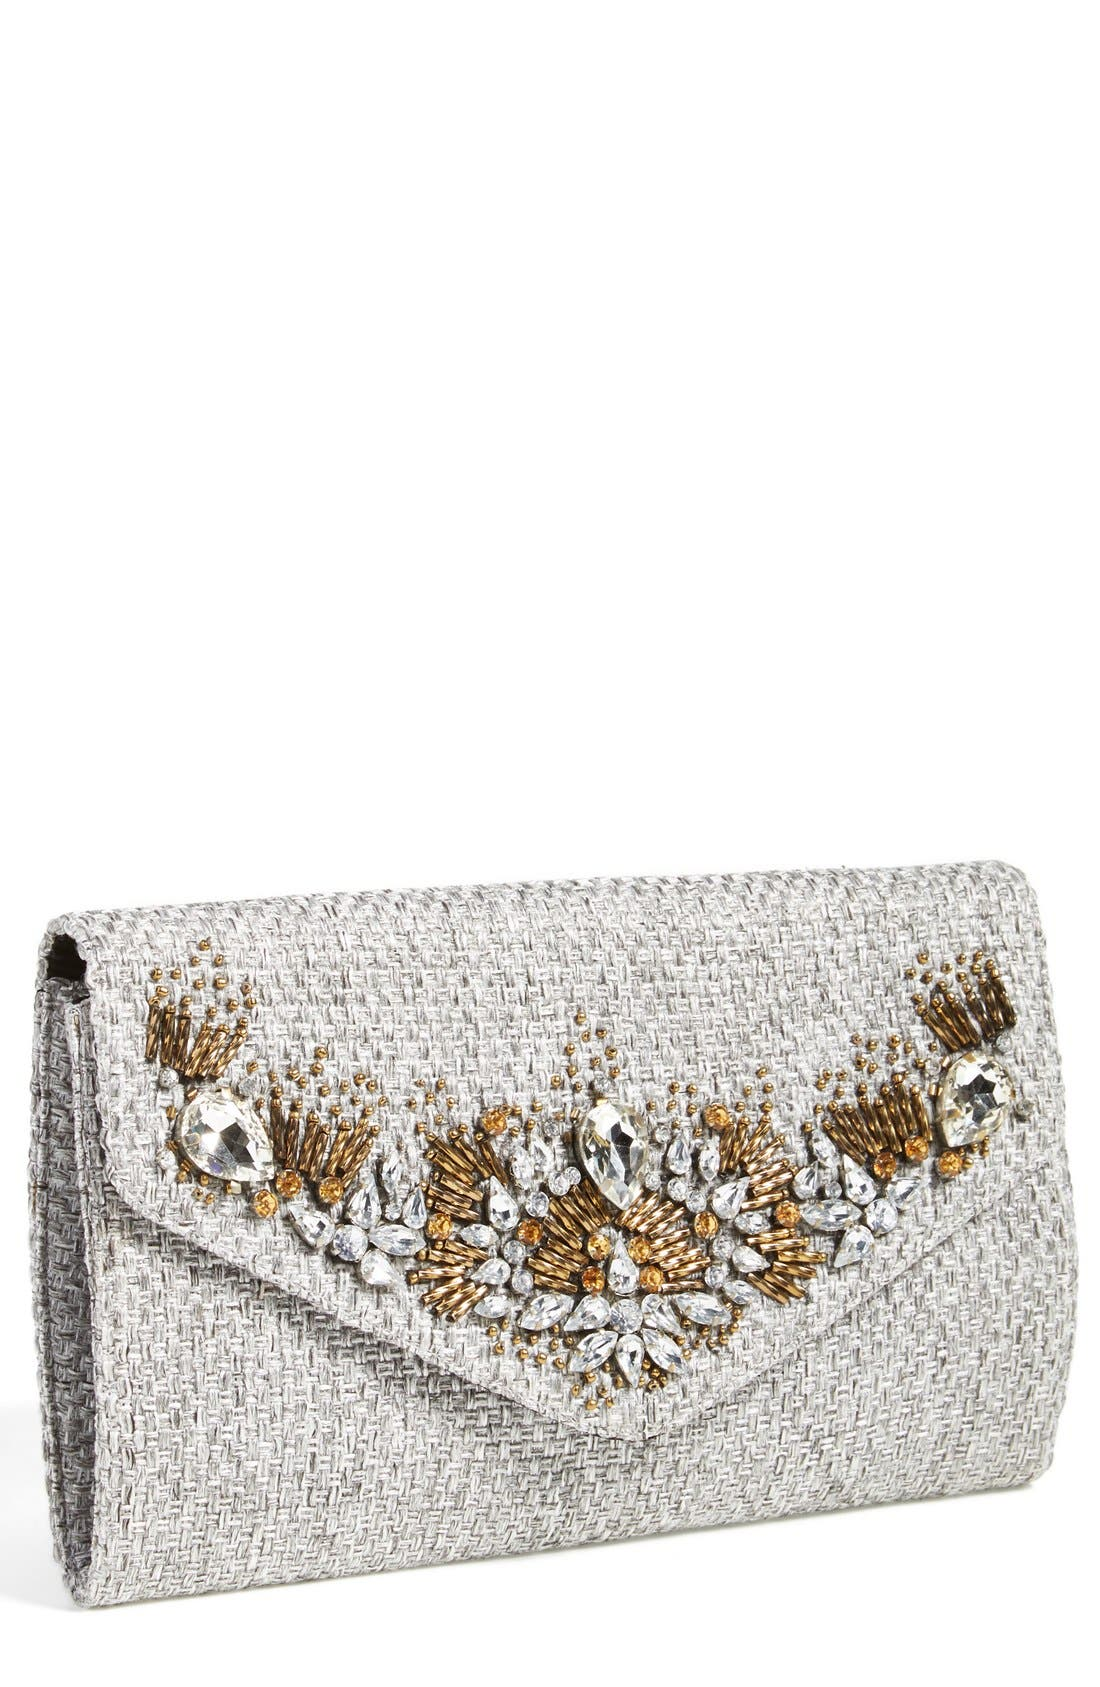 Main Image - Glint 'Crystallized' Envelope Clutch